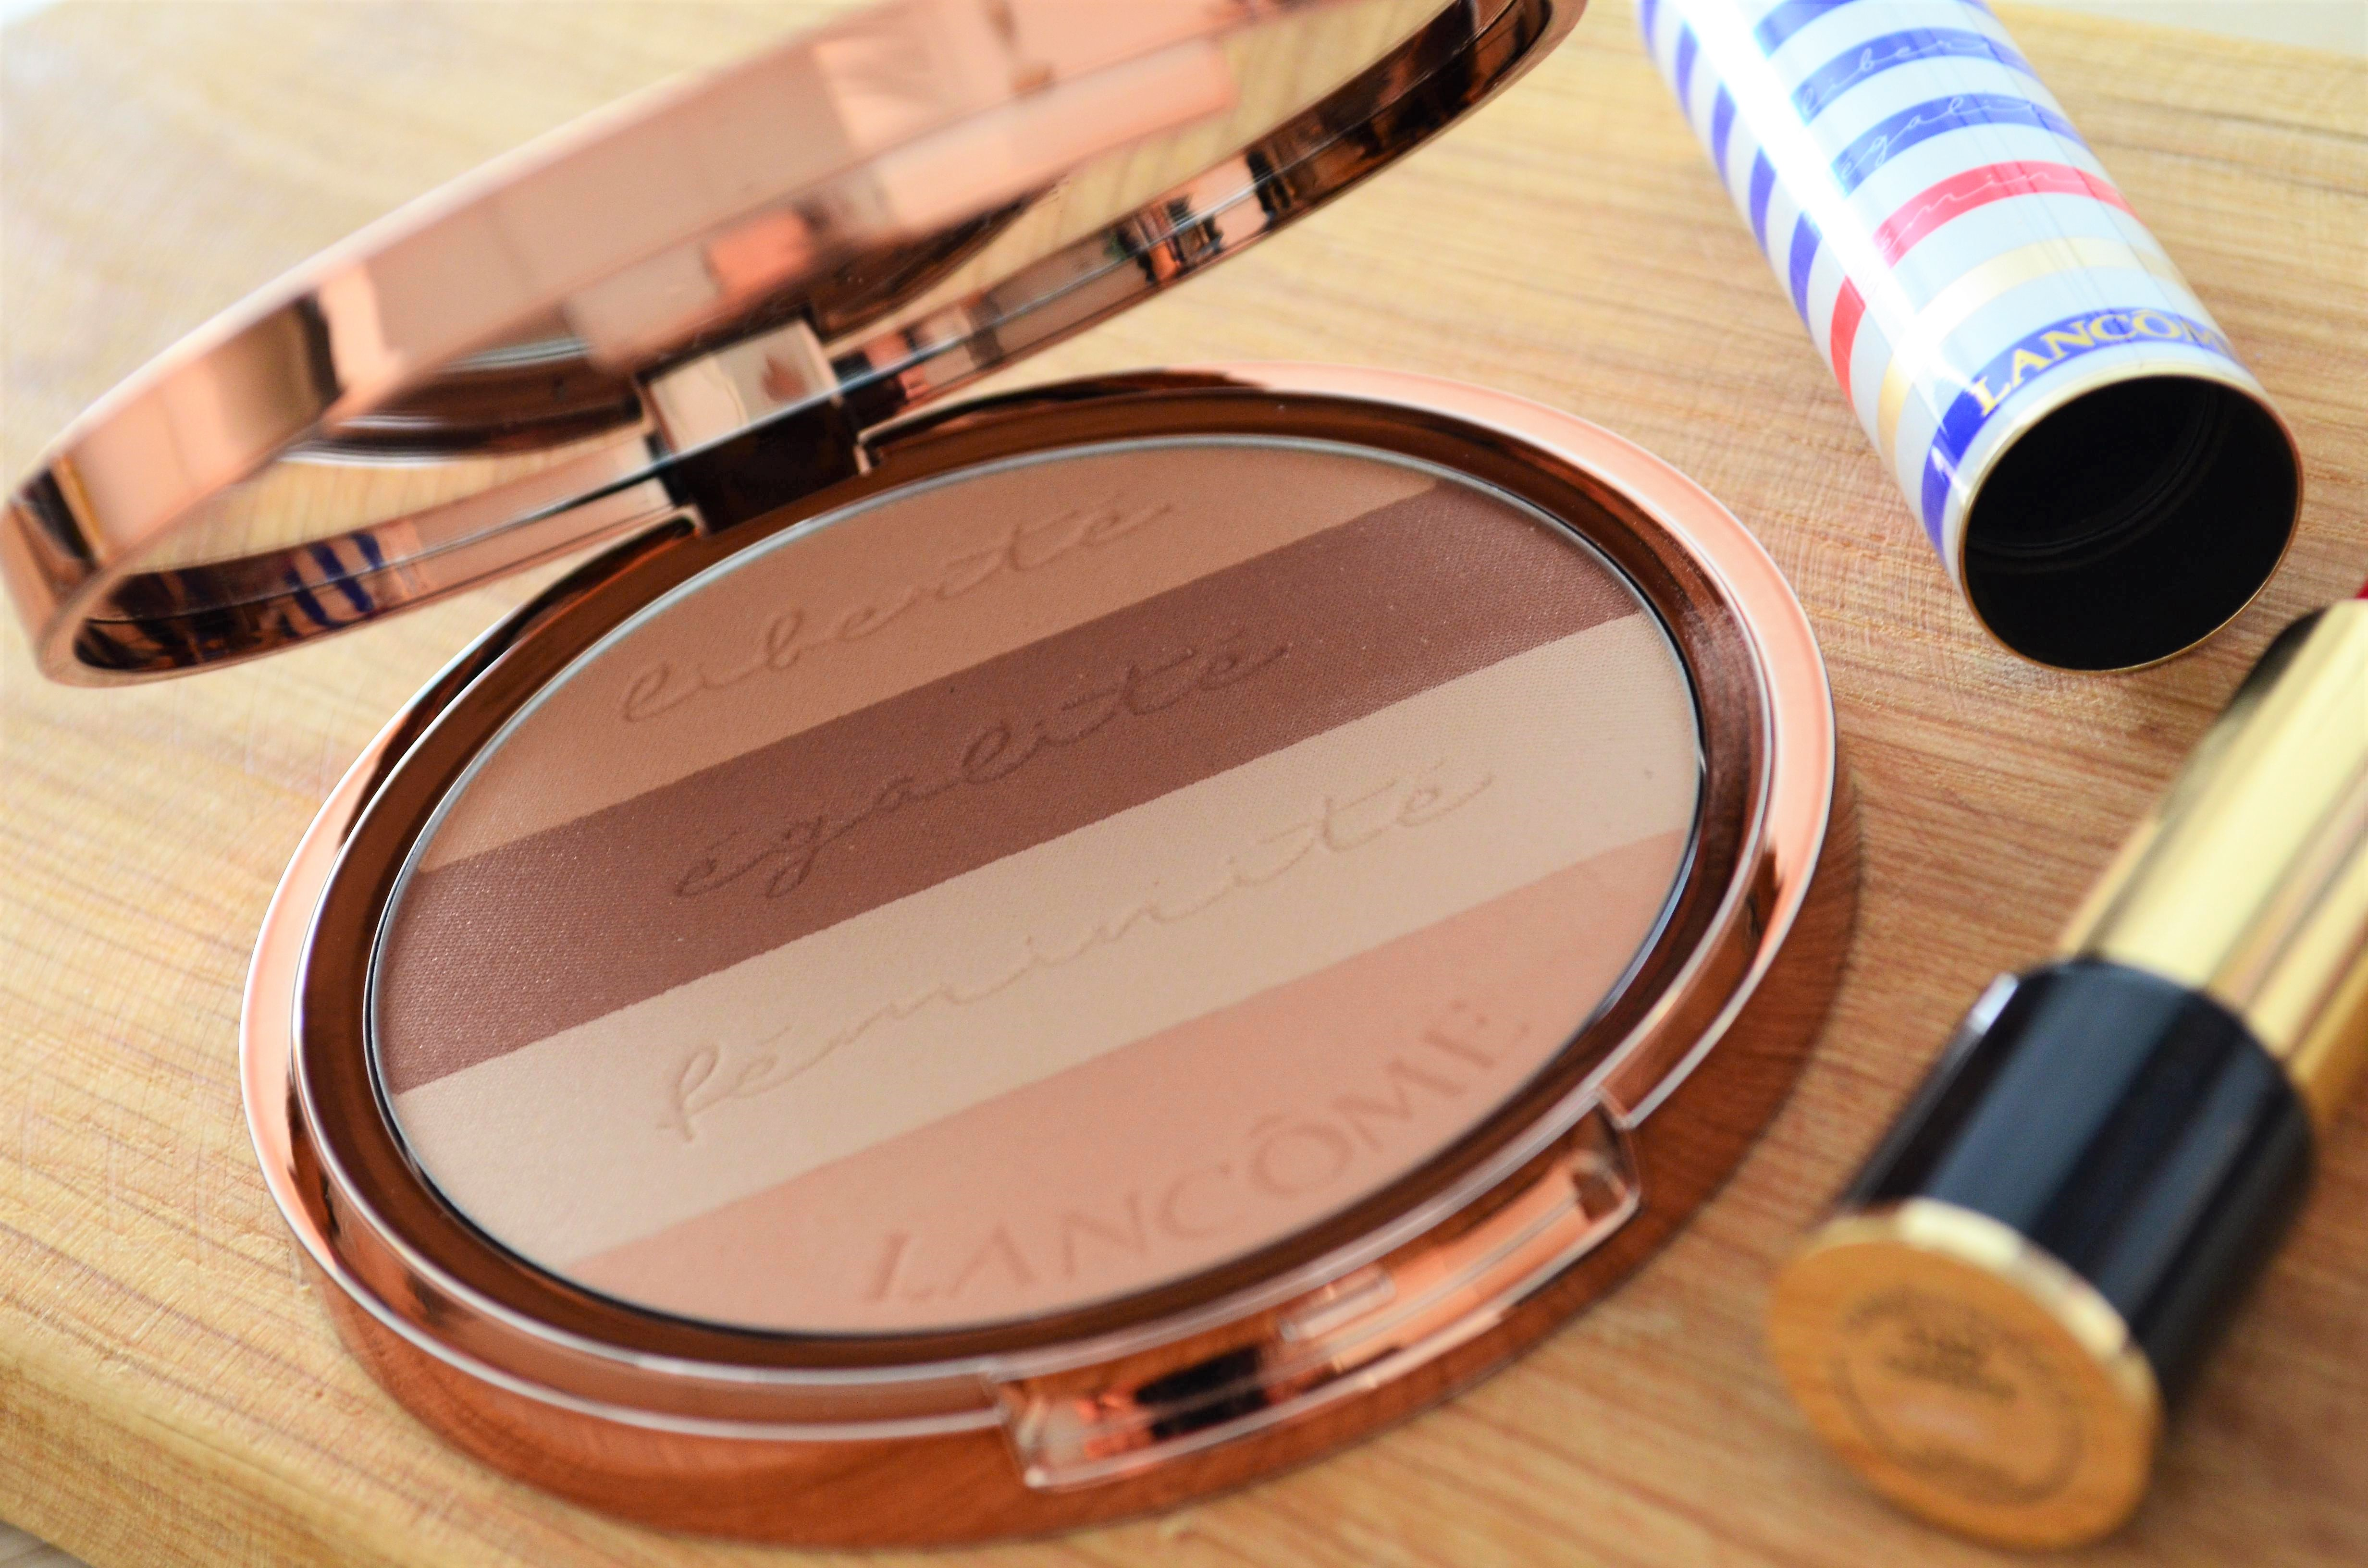 DSC 2264 4928x3264 - Lancome Summer Look 2019 - Bronzer & Lipstick Review